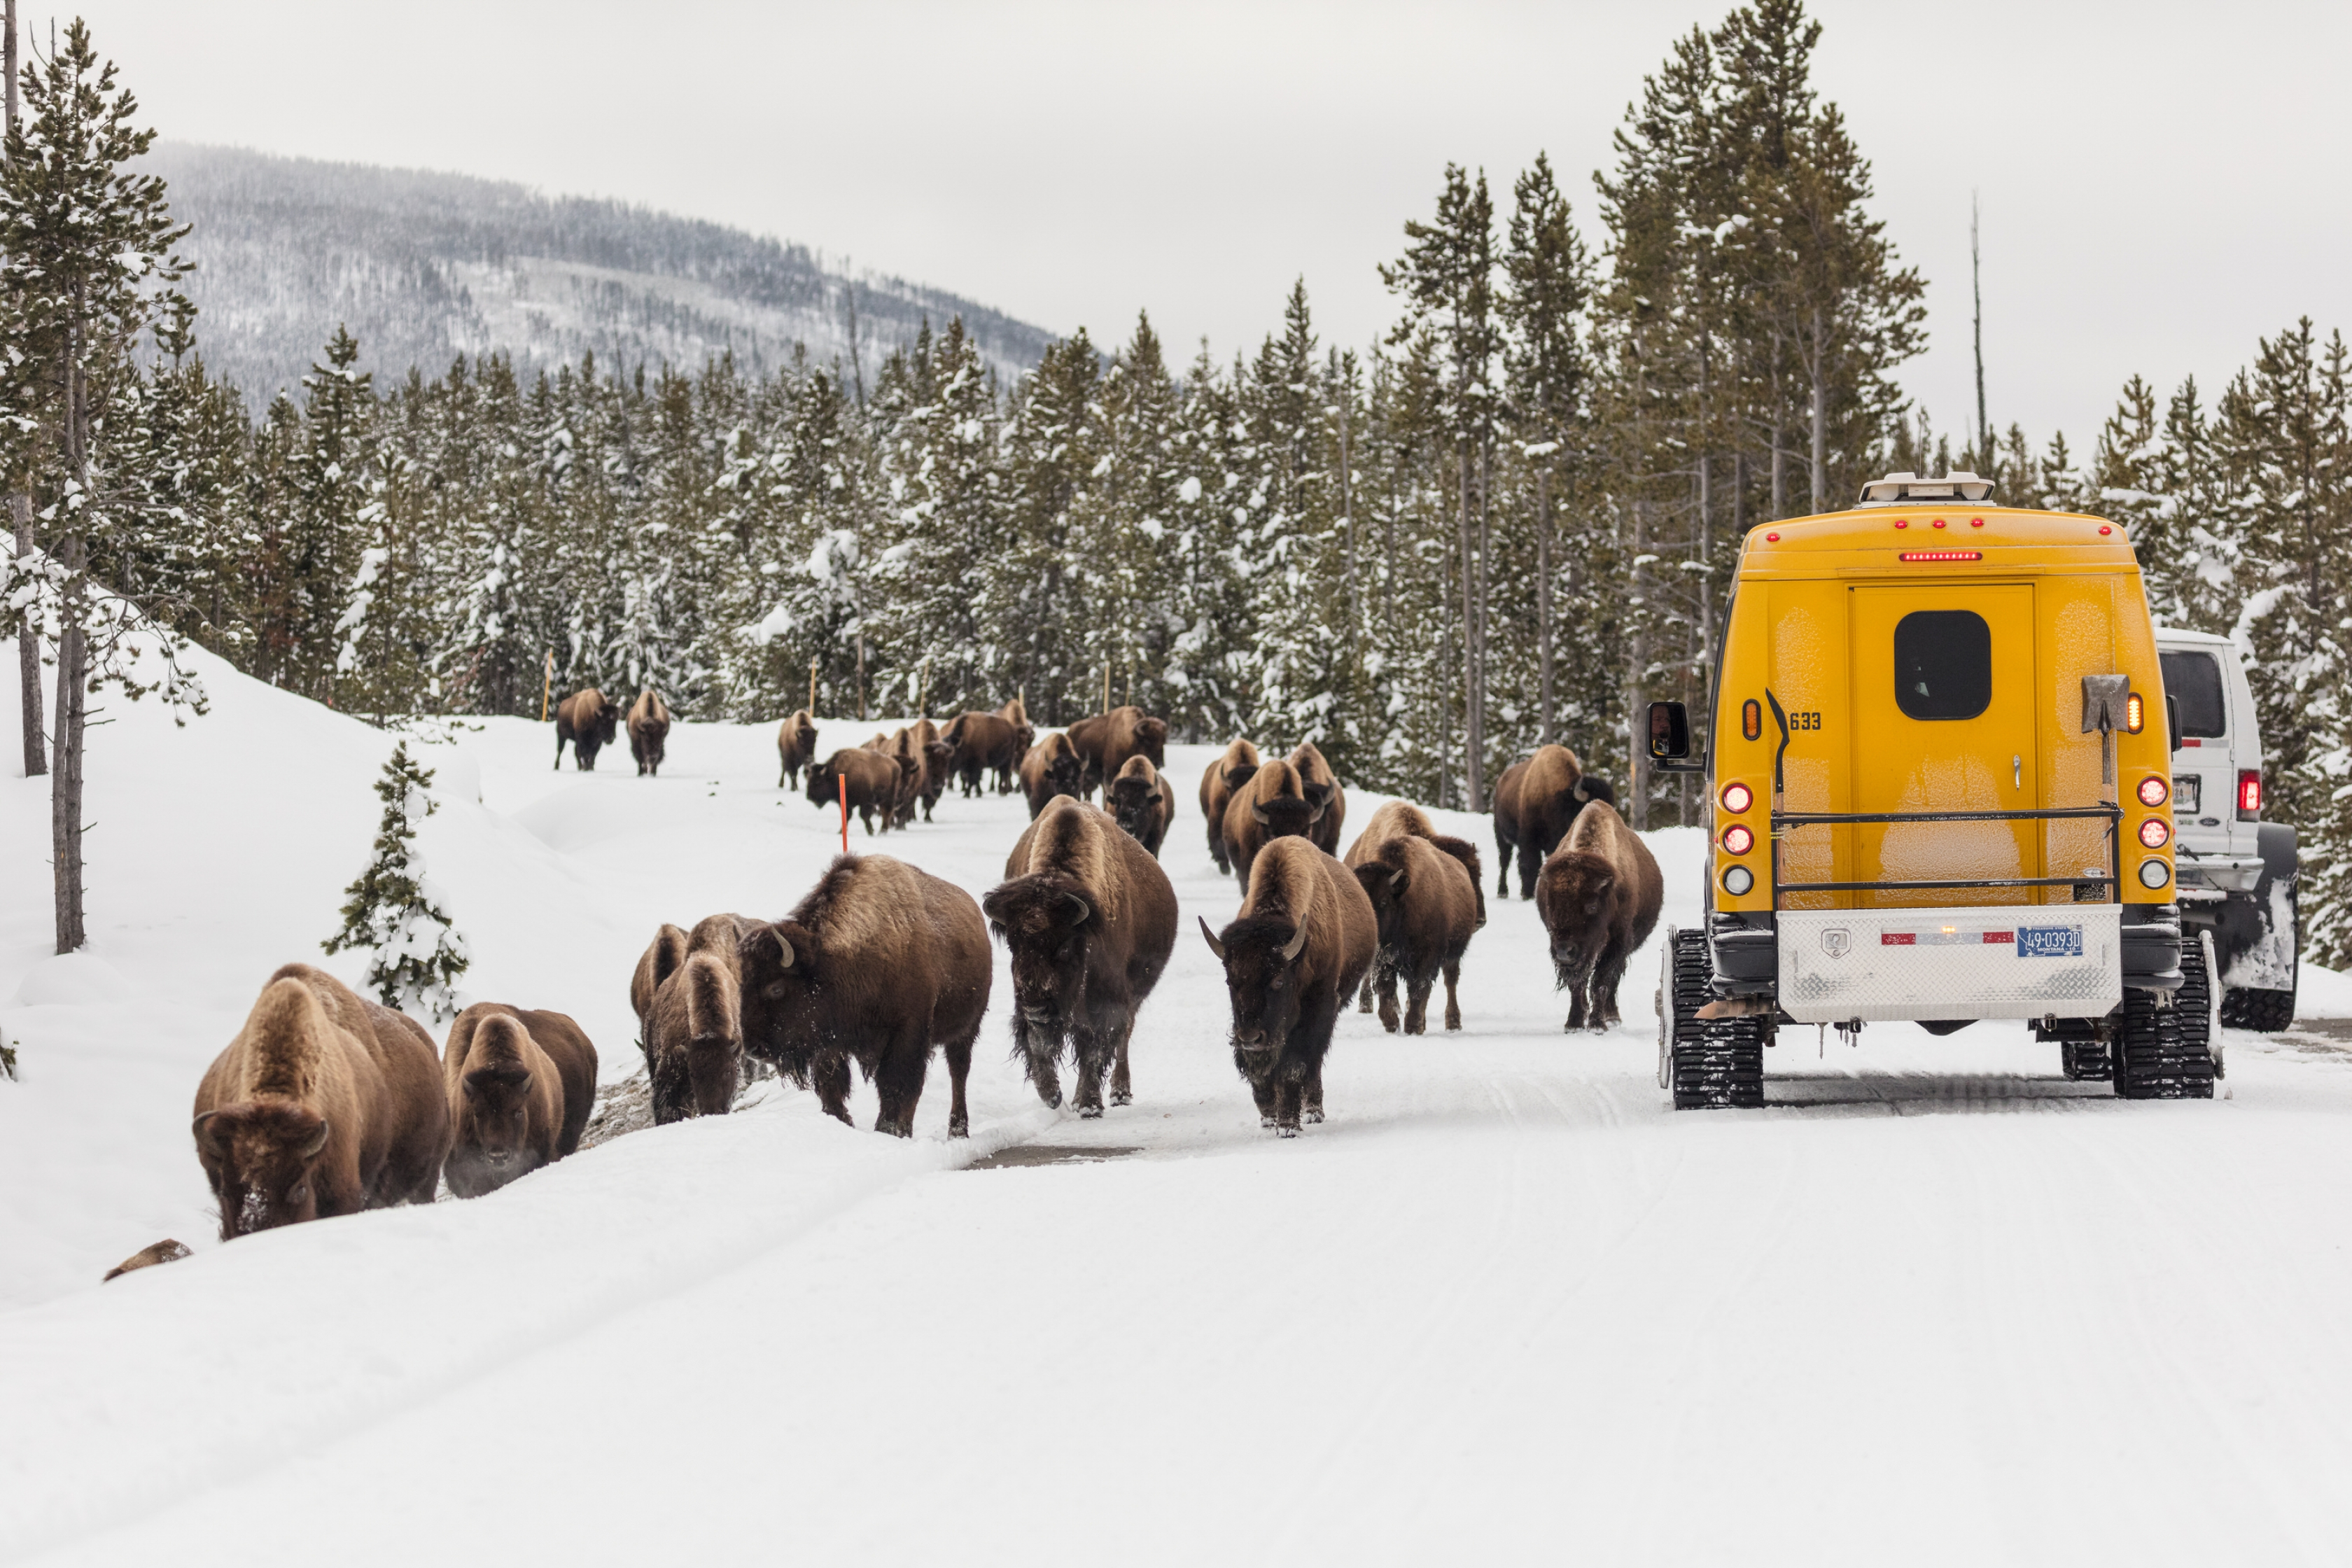 A herd of bison and a yellow snowcoach sharing the snowy road at Yellowstone National Park